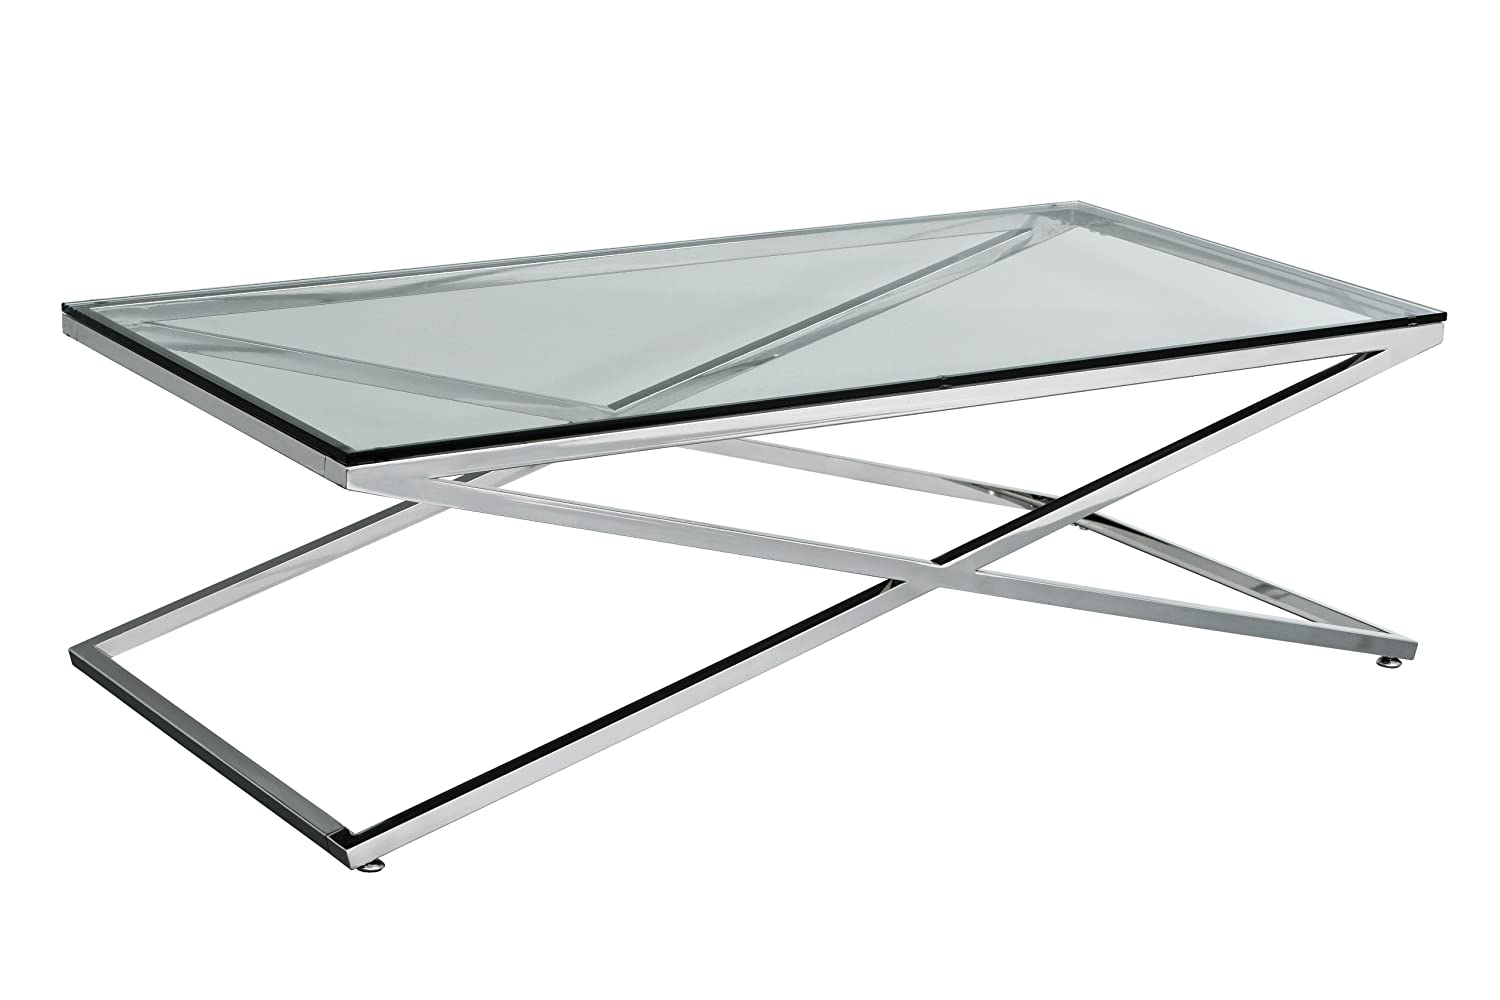 premier housewares coffee table with stainless steel frame and cleartempered glass  x  x  cm amazoncouk kitchen  home. premier housewares coffee table with stainless steel frame and